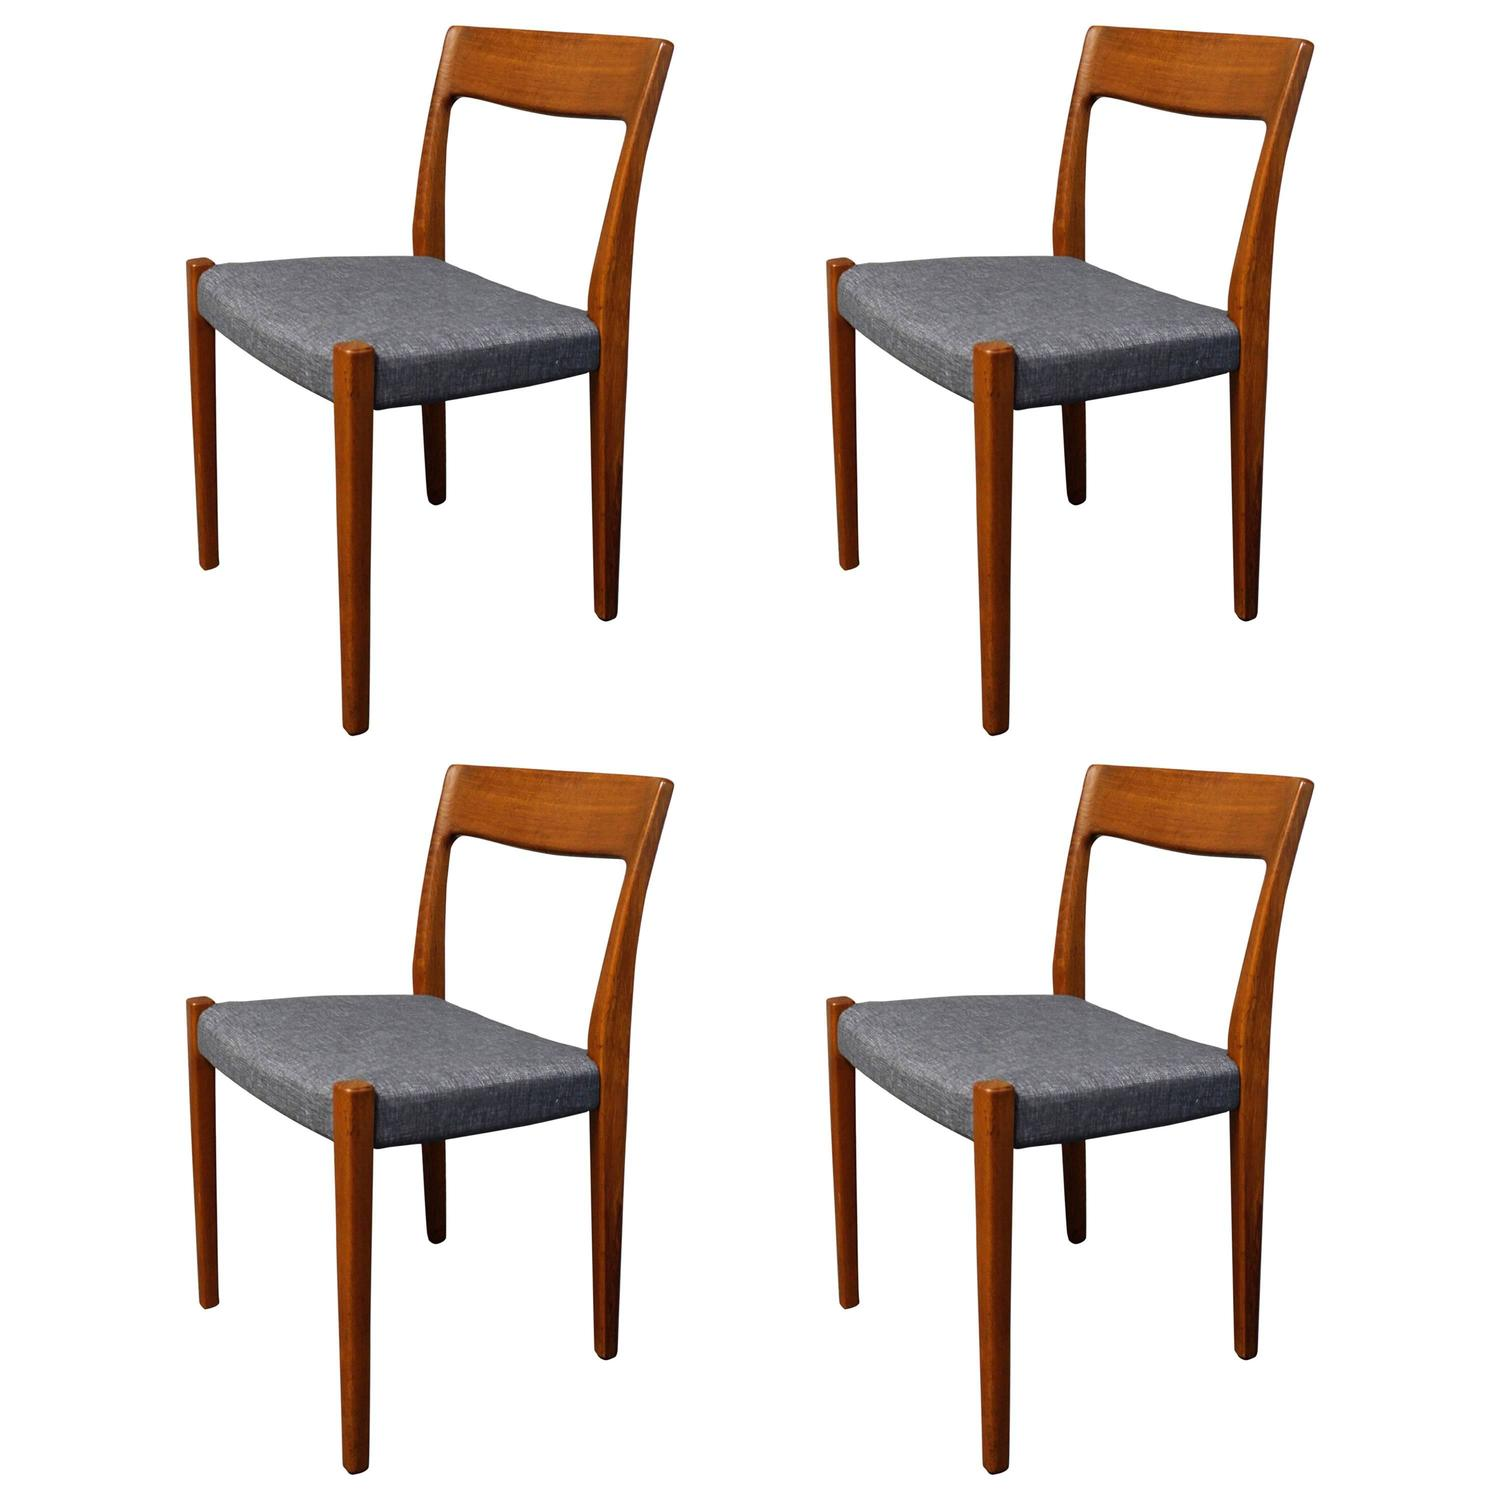 teak dining room chairs for sale ergonomic chair sewing four svegards markaryd at 1stdibs